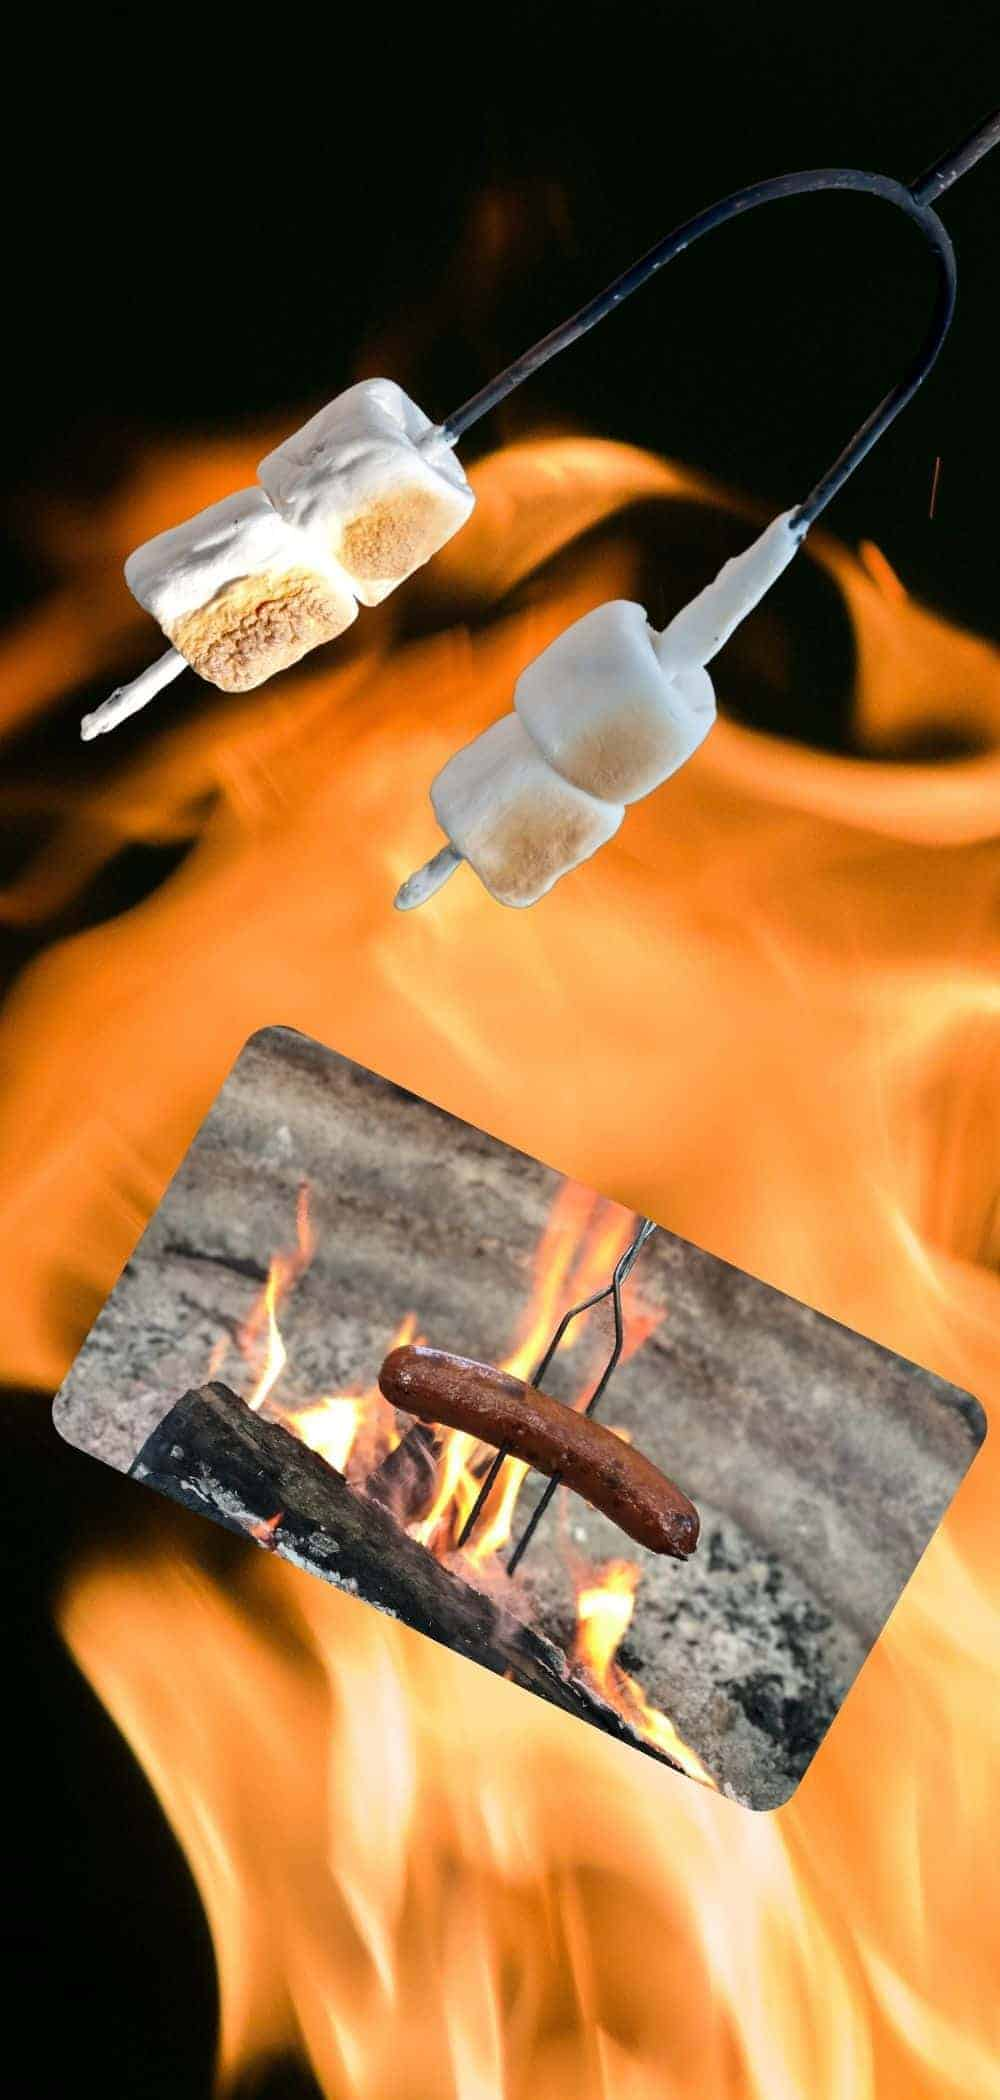 roasting hot dogs and marshmallows